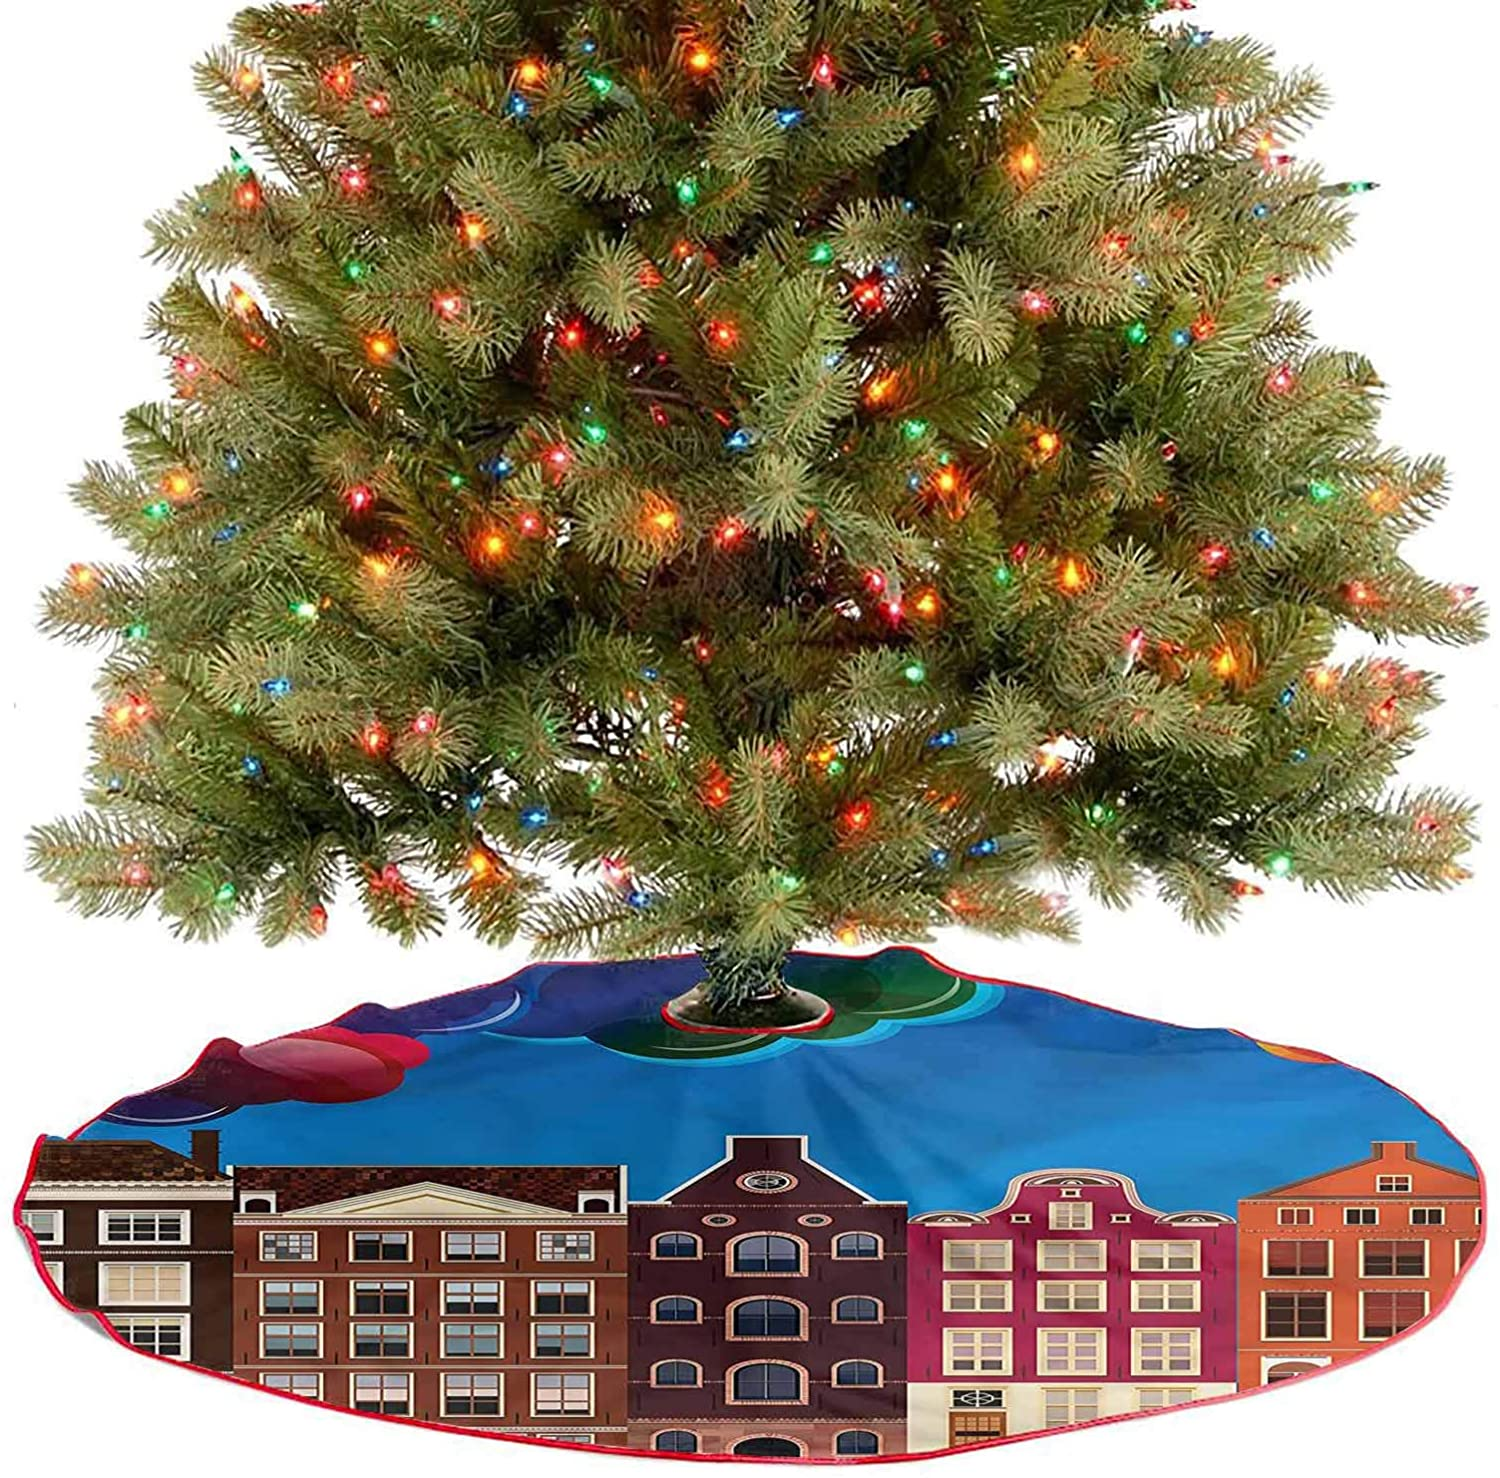 ThinkingPower Tree Skirts Mat European Houses Cartoon New Year Party Supply for Holiday Party Diameter - 36 Inch